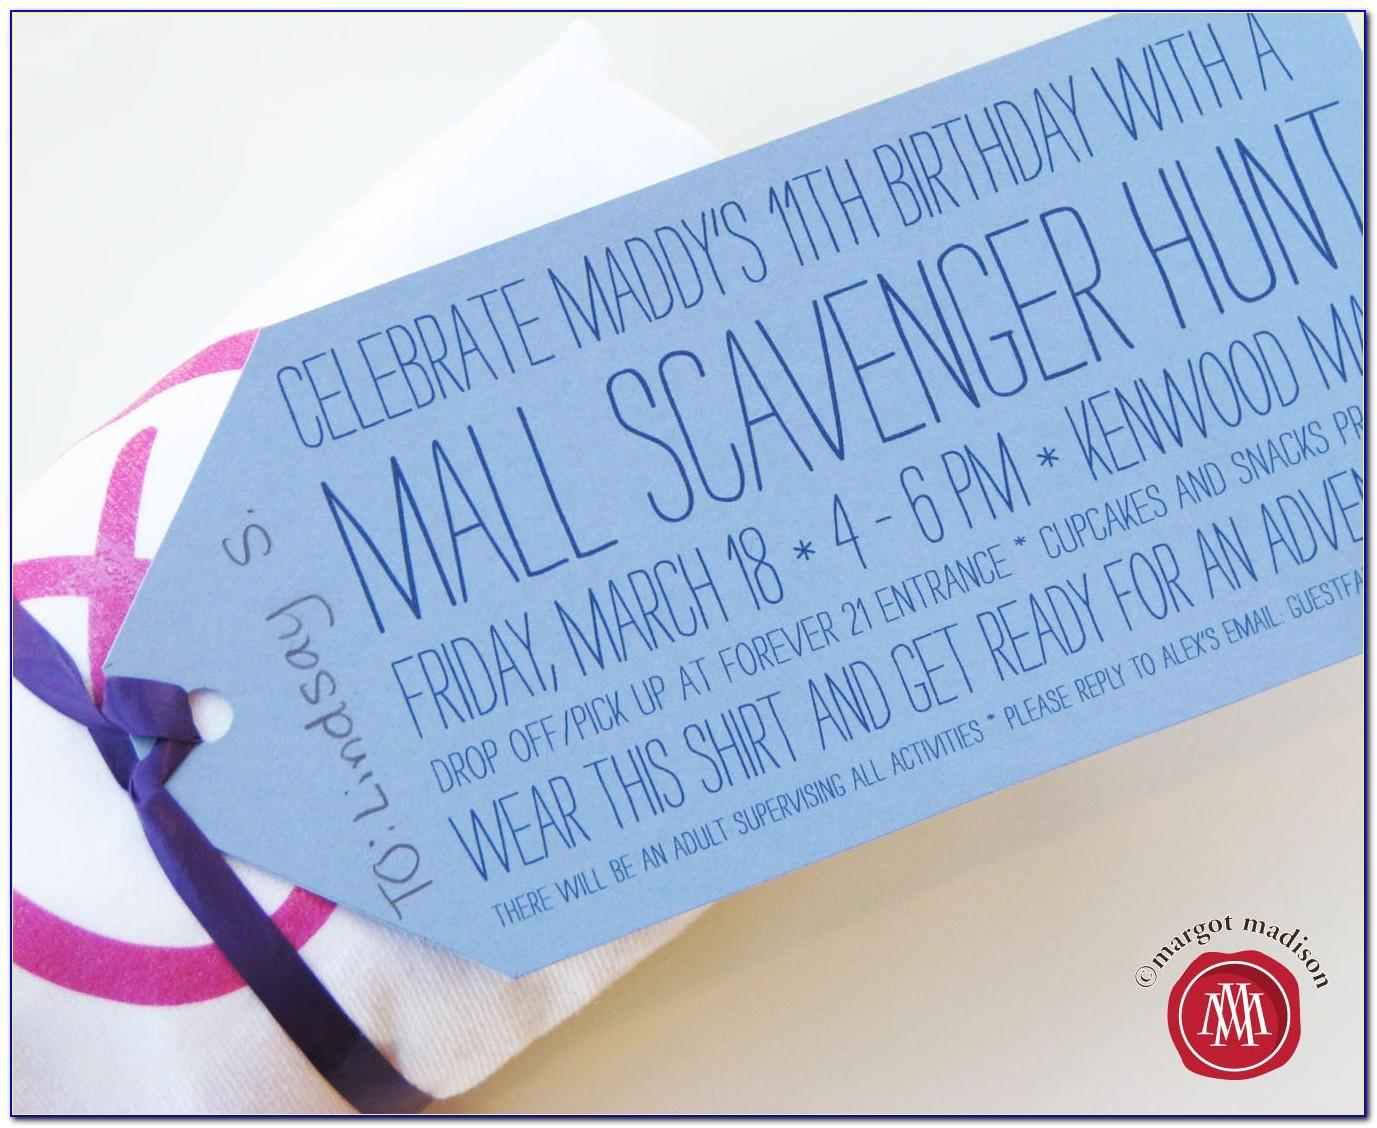 Mall Scavenger Hunt Invitation Wording